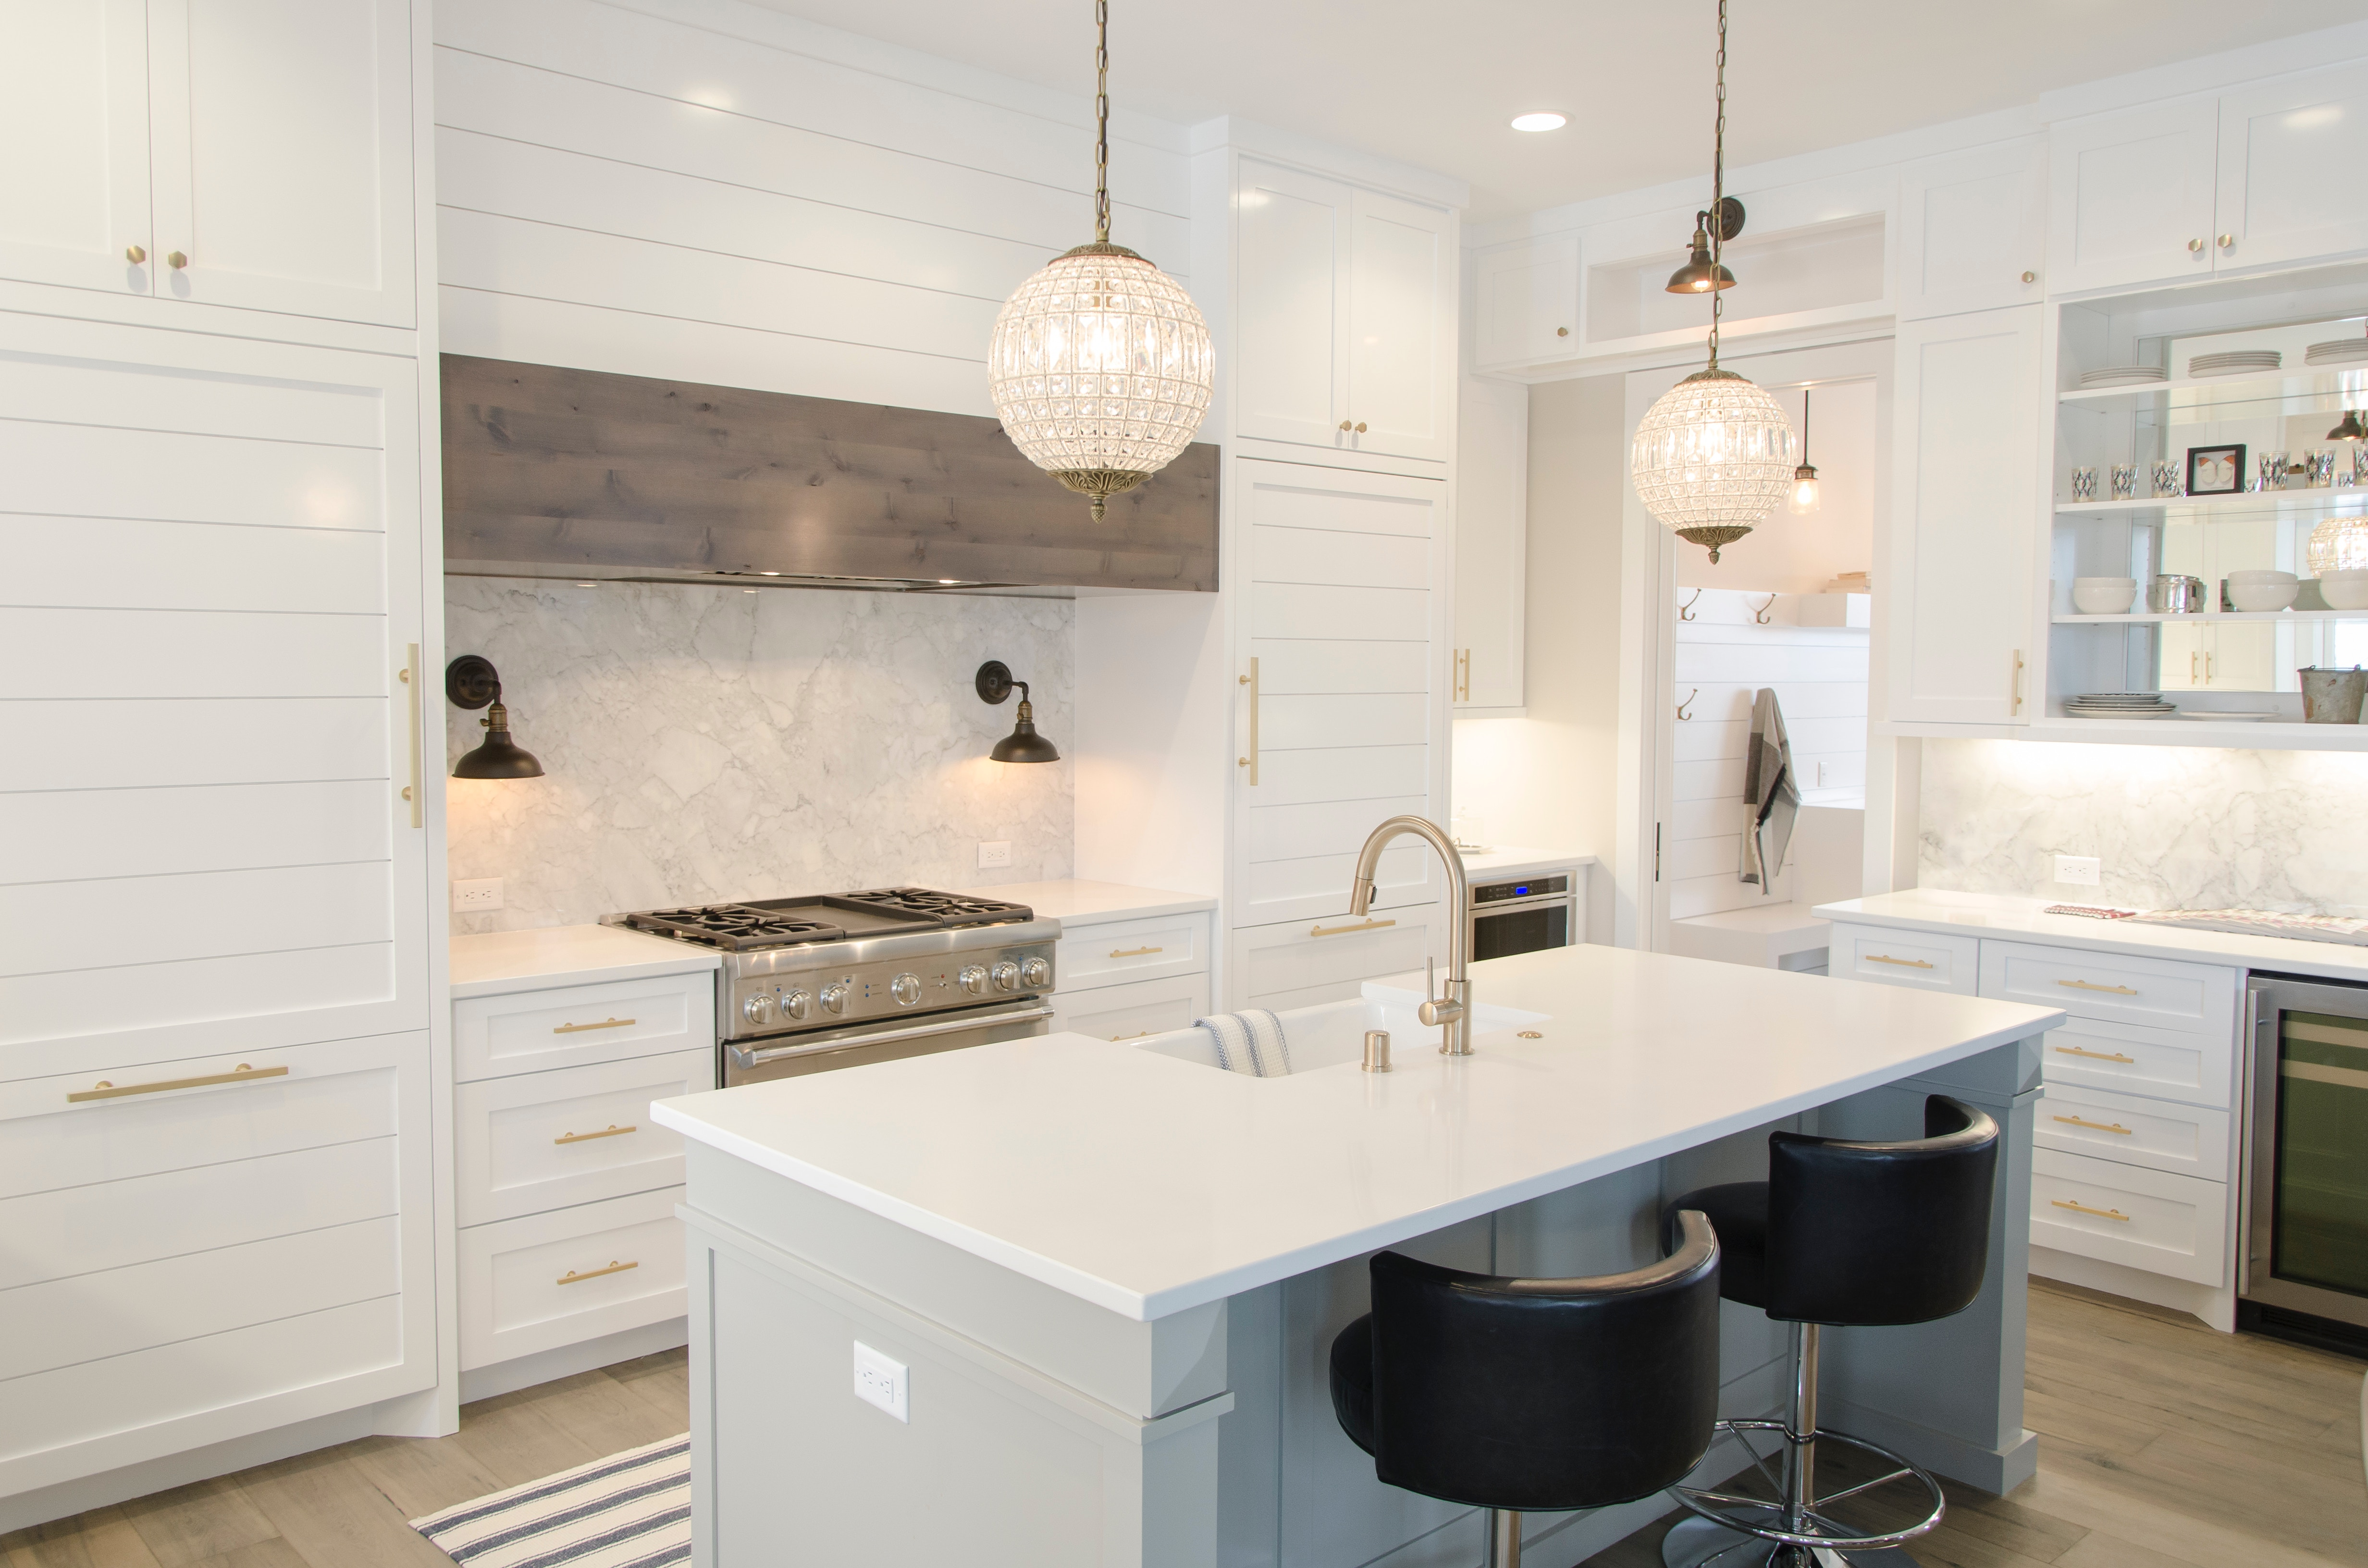 a white high gloss designed kitchen with an island in the middle and modern features and lighting